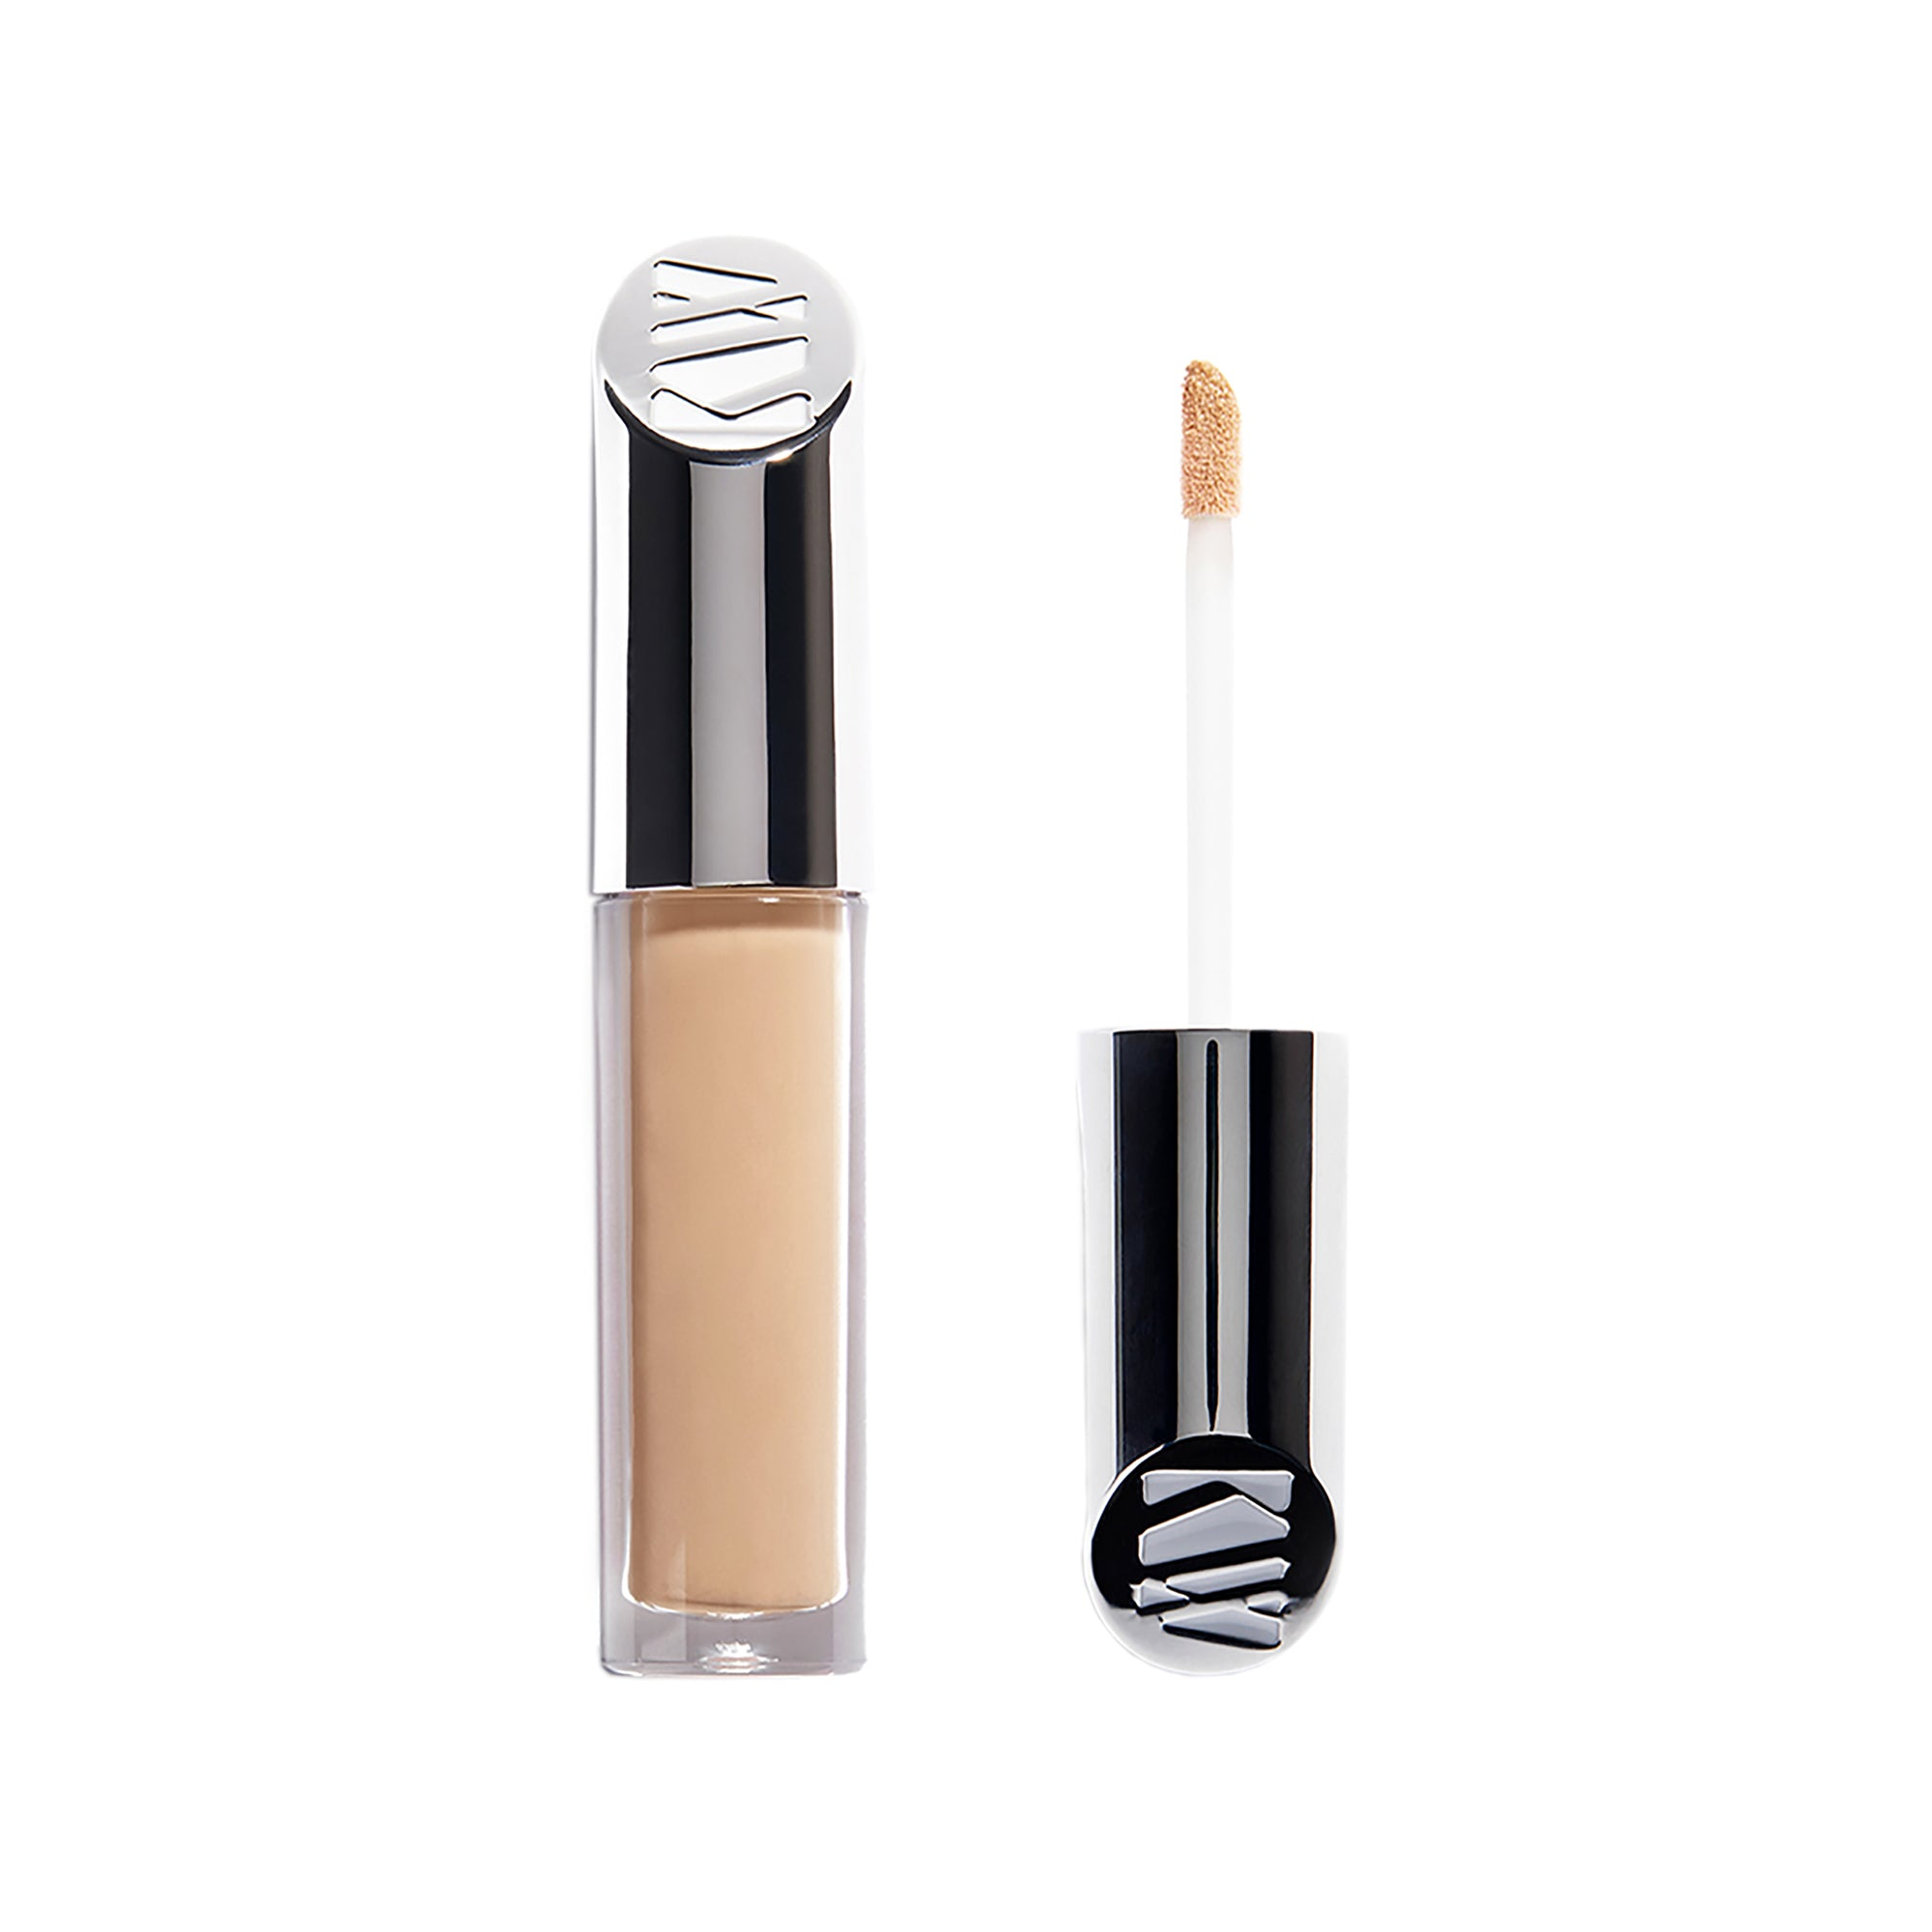 Kjaer Weis - Invisible Touch Concealer